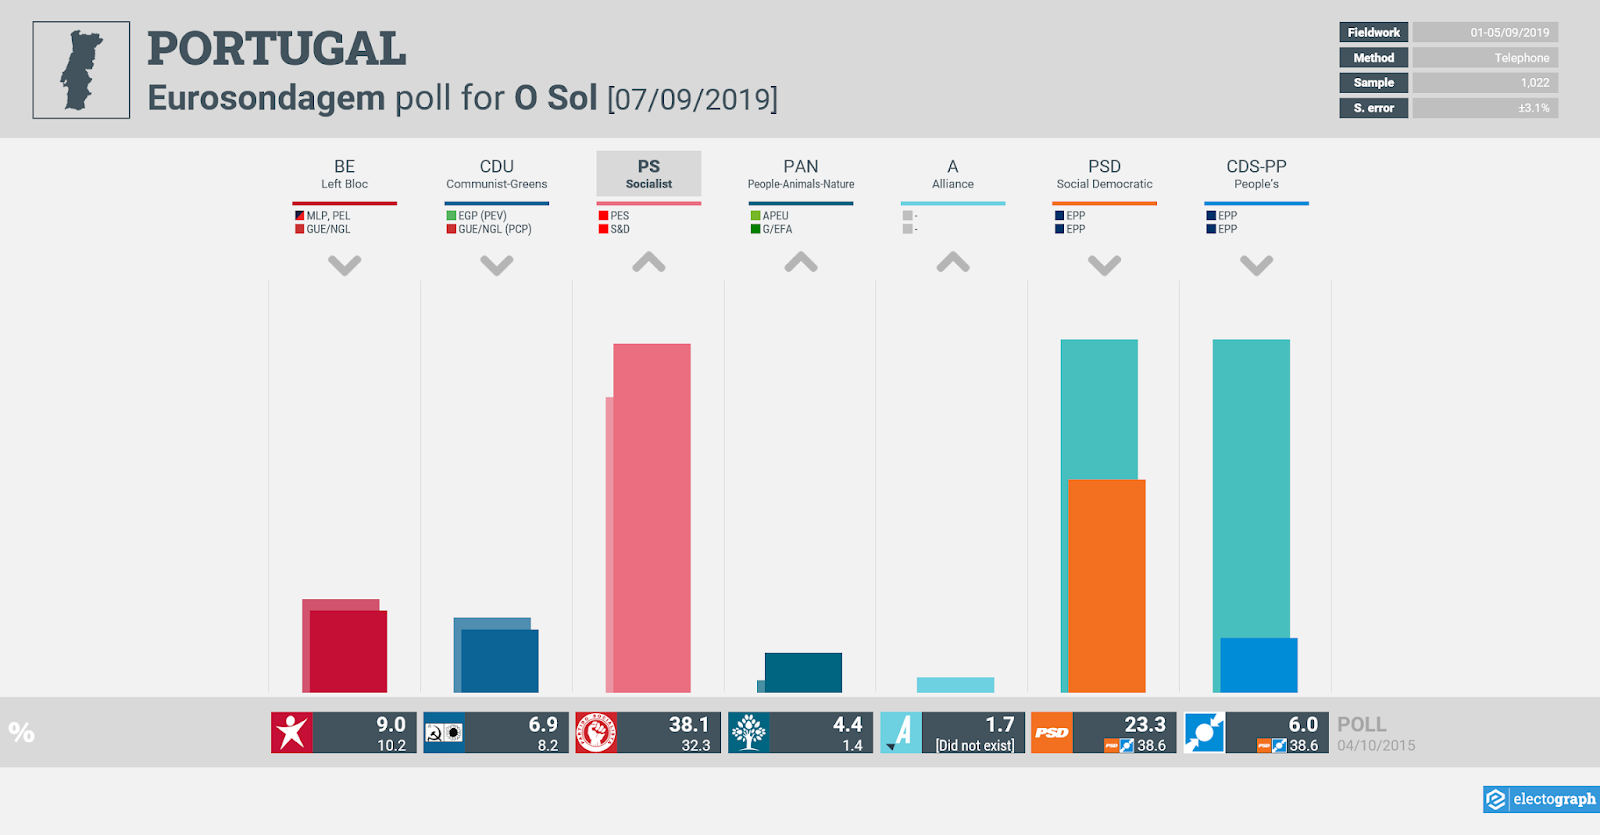 PORTUGAL: Eurosondagem poll chart for O Sol, 7 September 2019